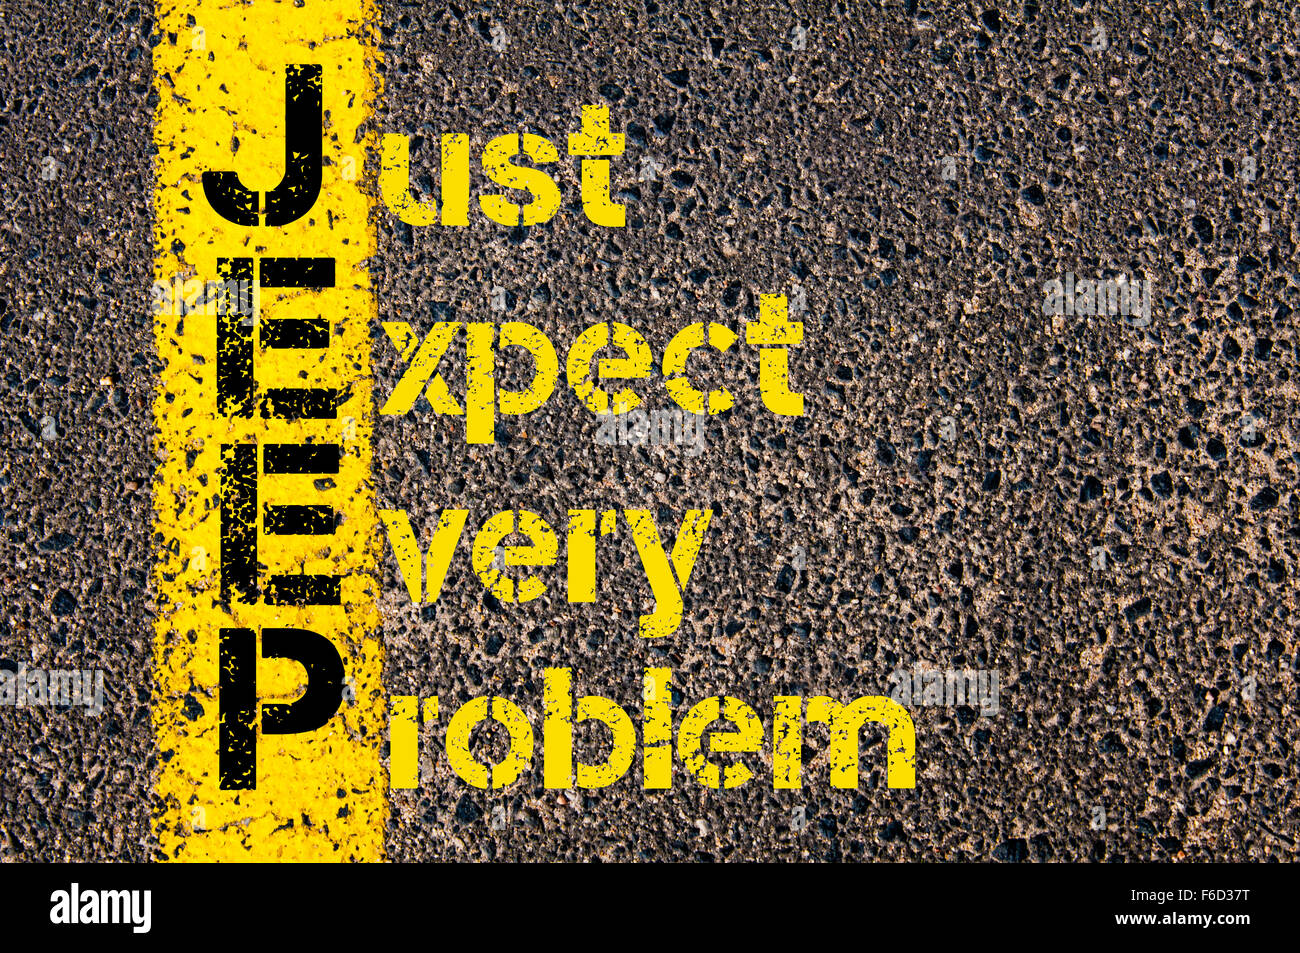 Concept image of Business Acronym JEEP as Just Expect Every Problem written over road marking yellow paint line. - Stock Image